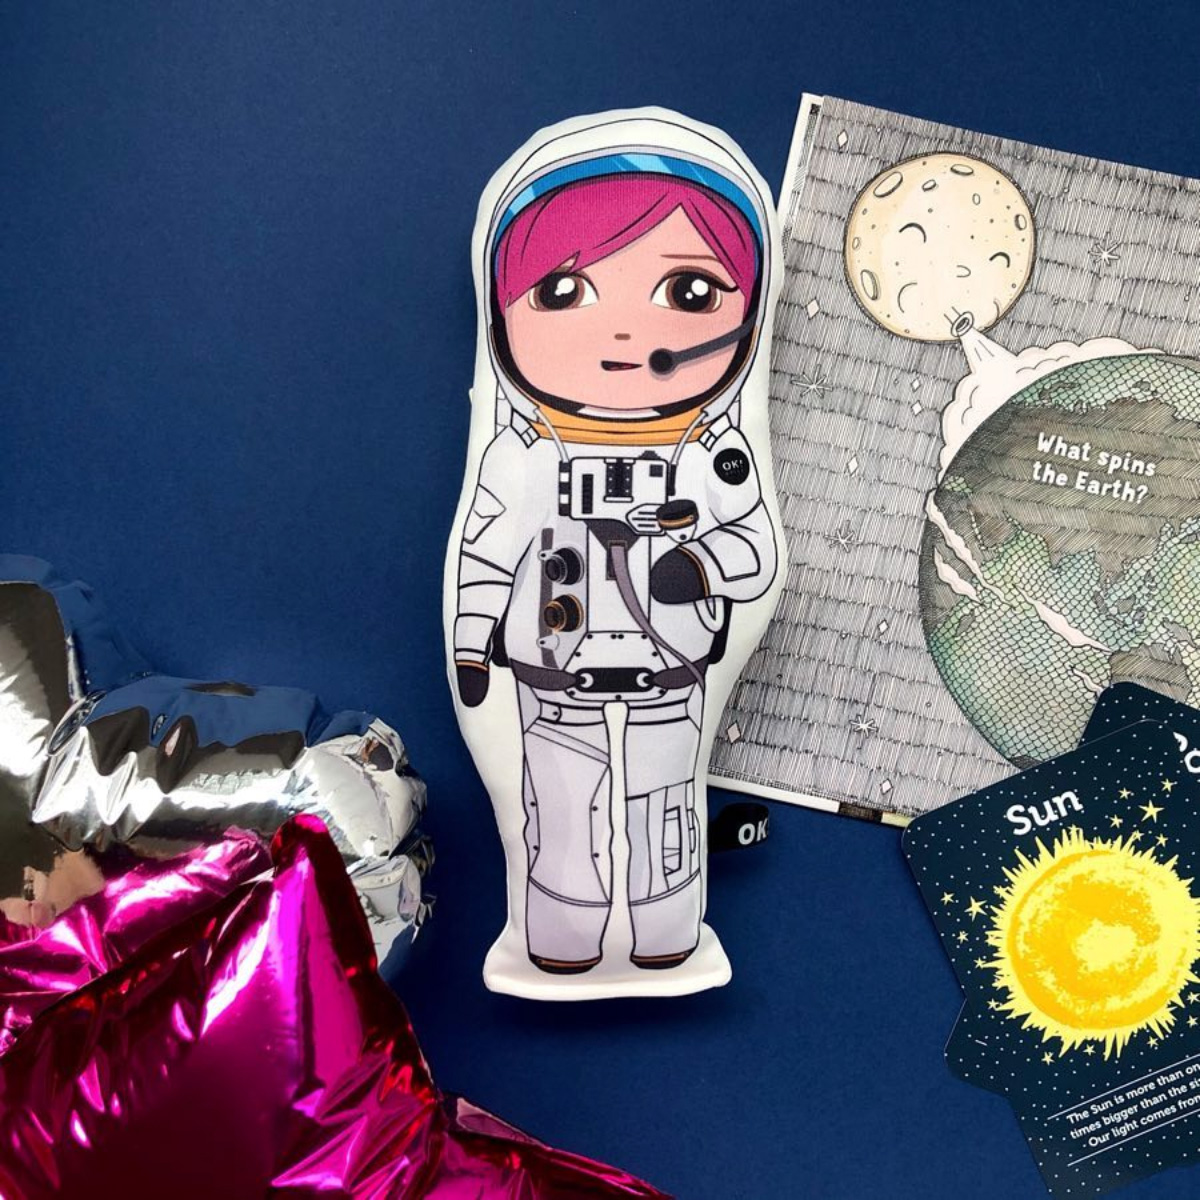 Amber Astronaut doll on navy background